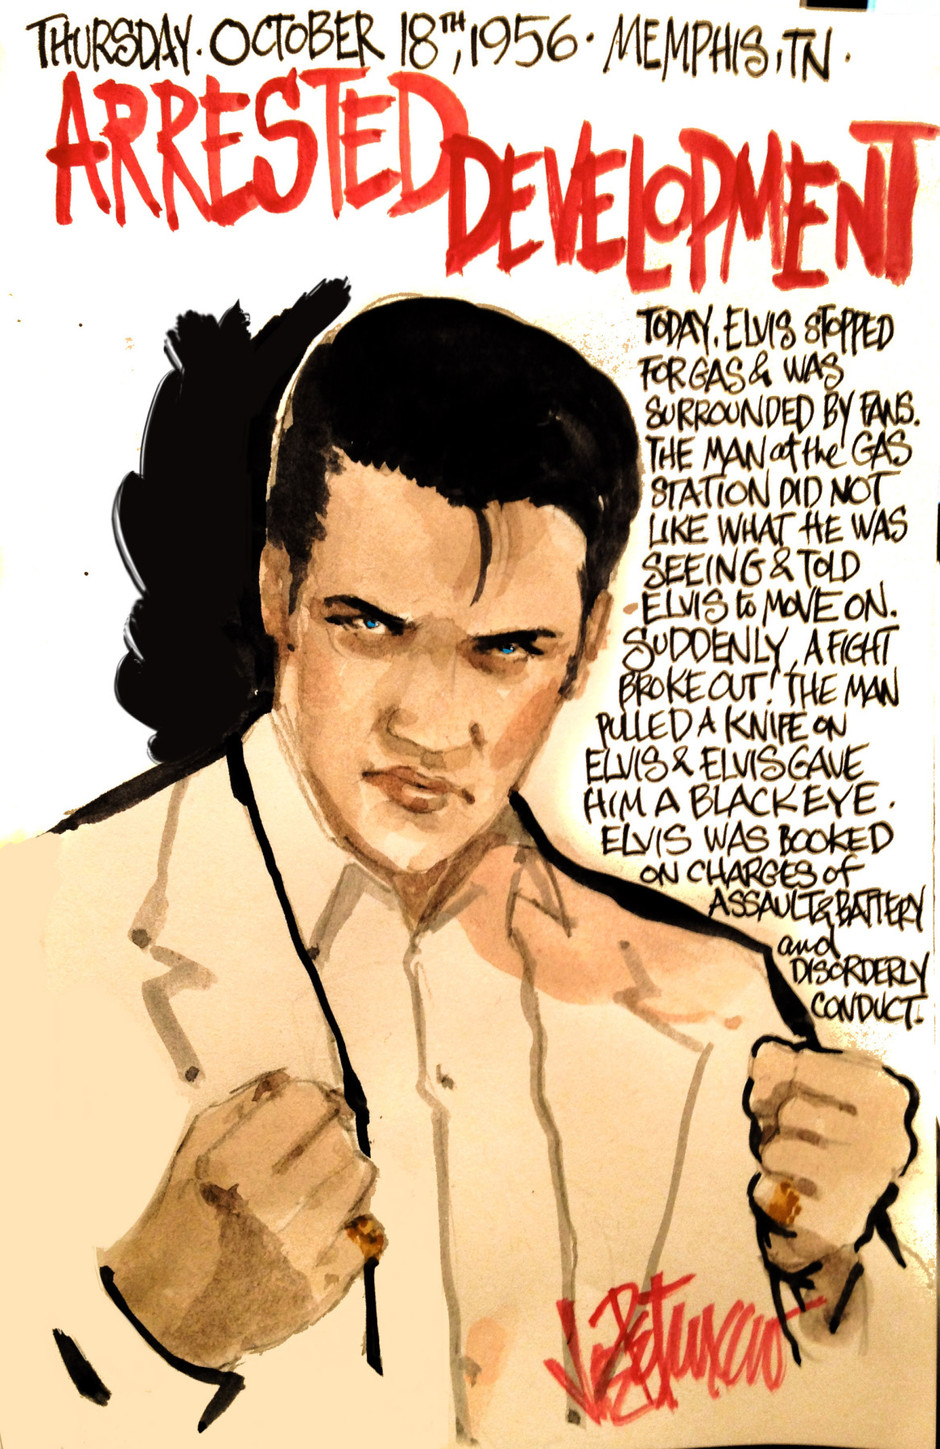 THIS DAY IN ELVIS HISTORY... ARRESTED DEVELOPMENT